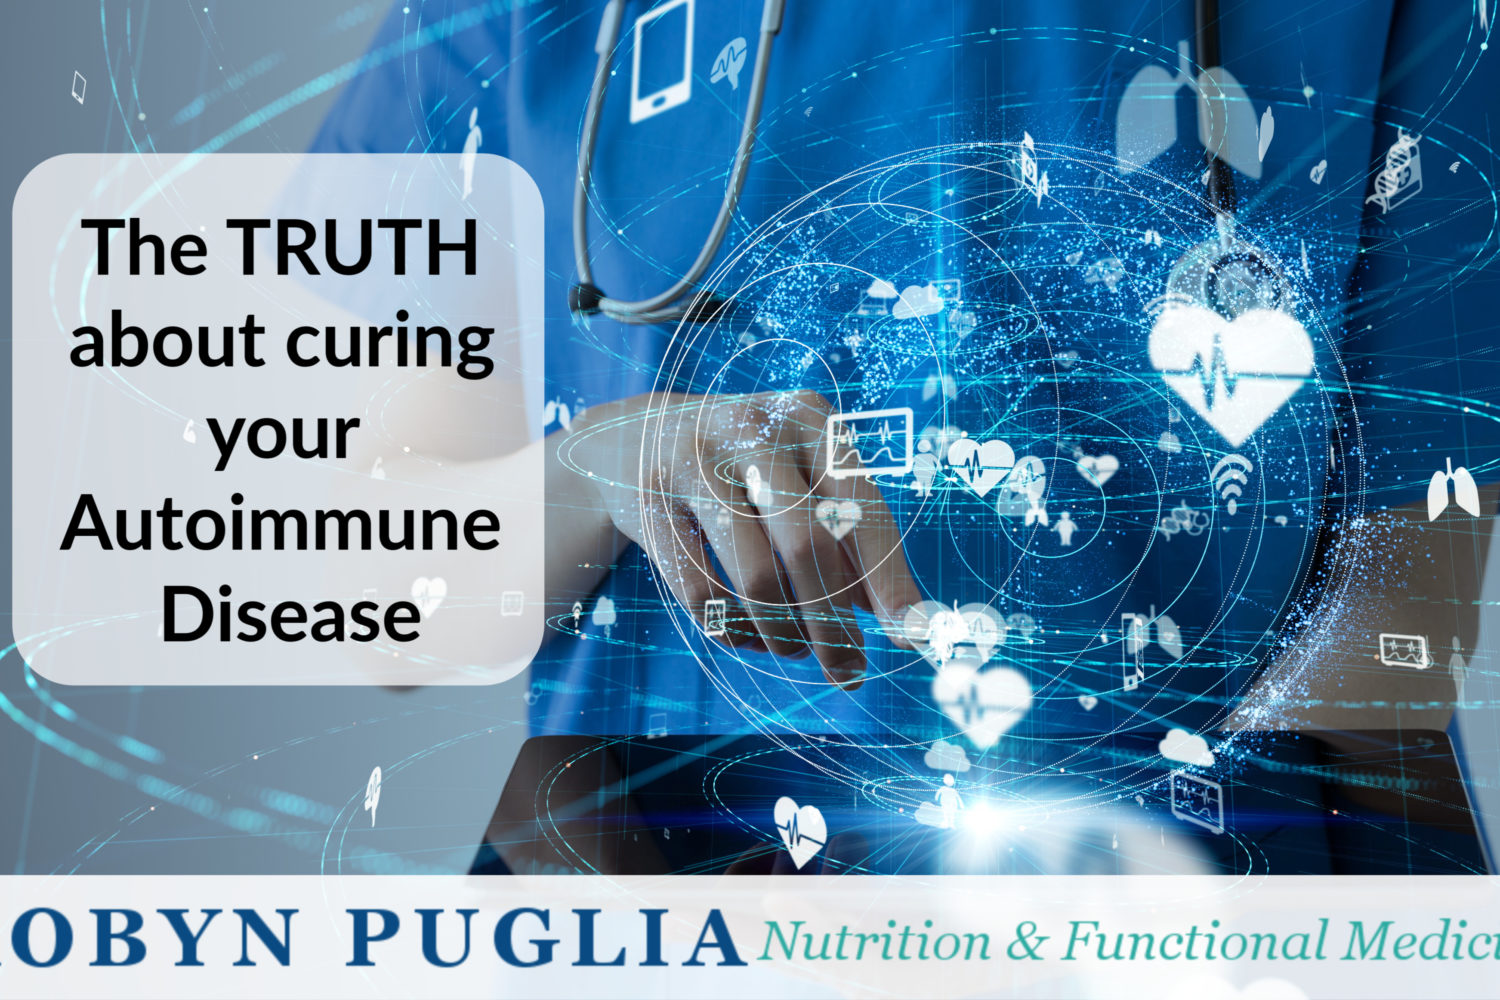 The truth about curing your autoimmune disease